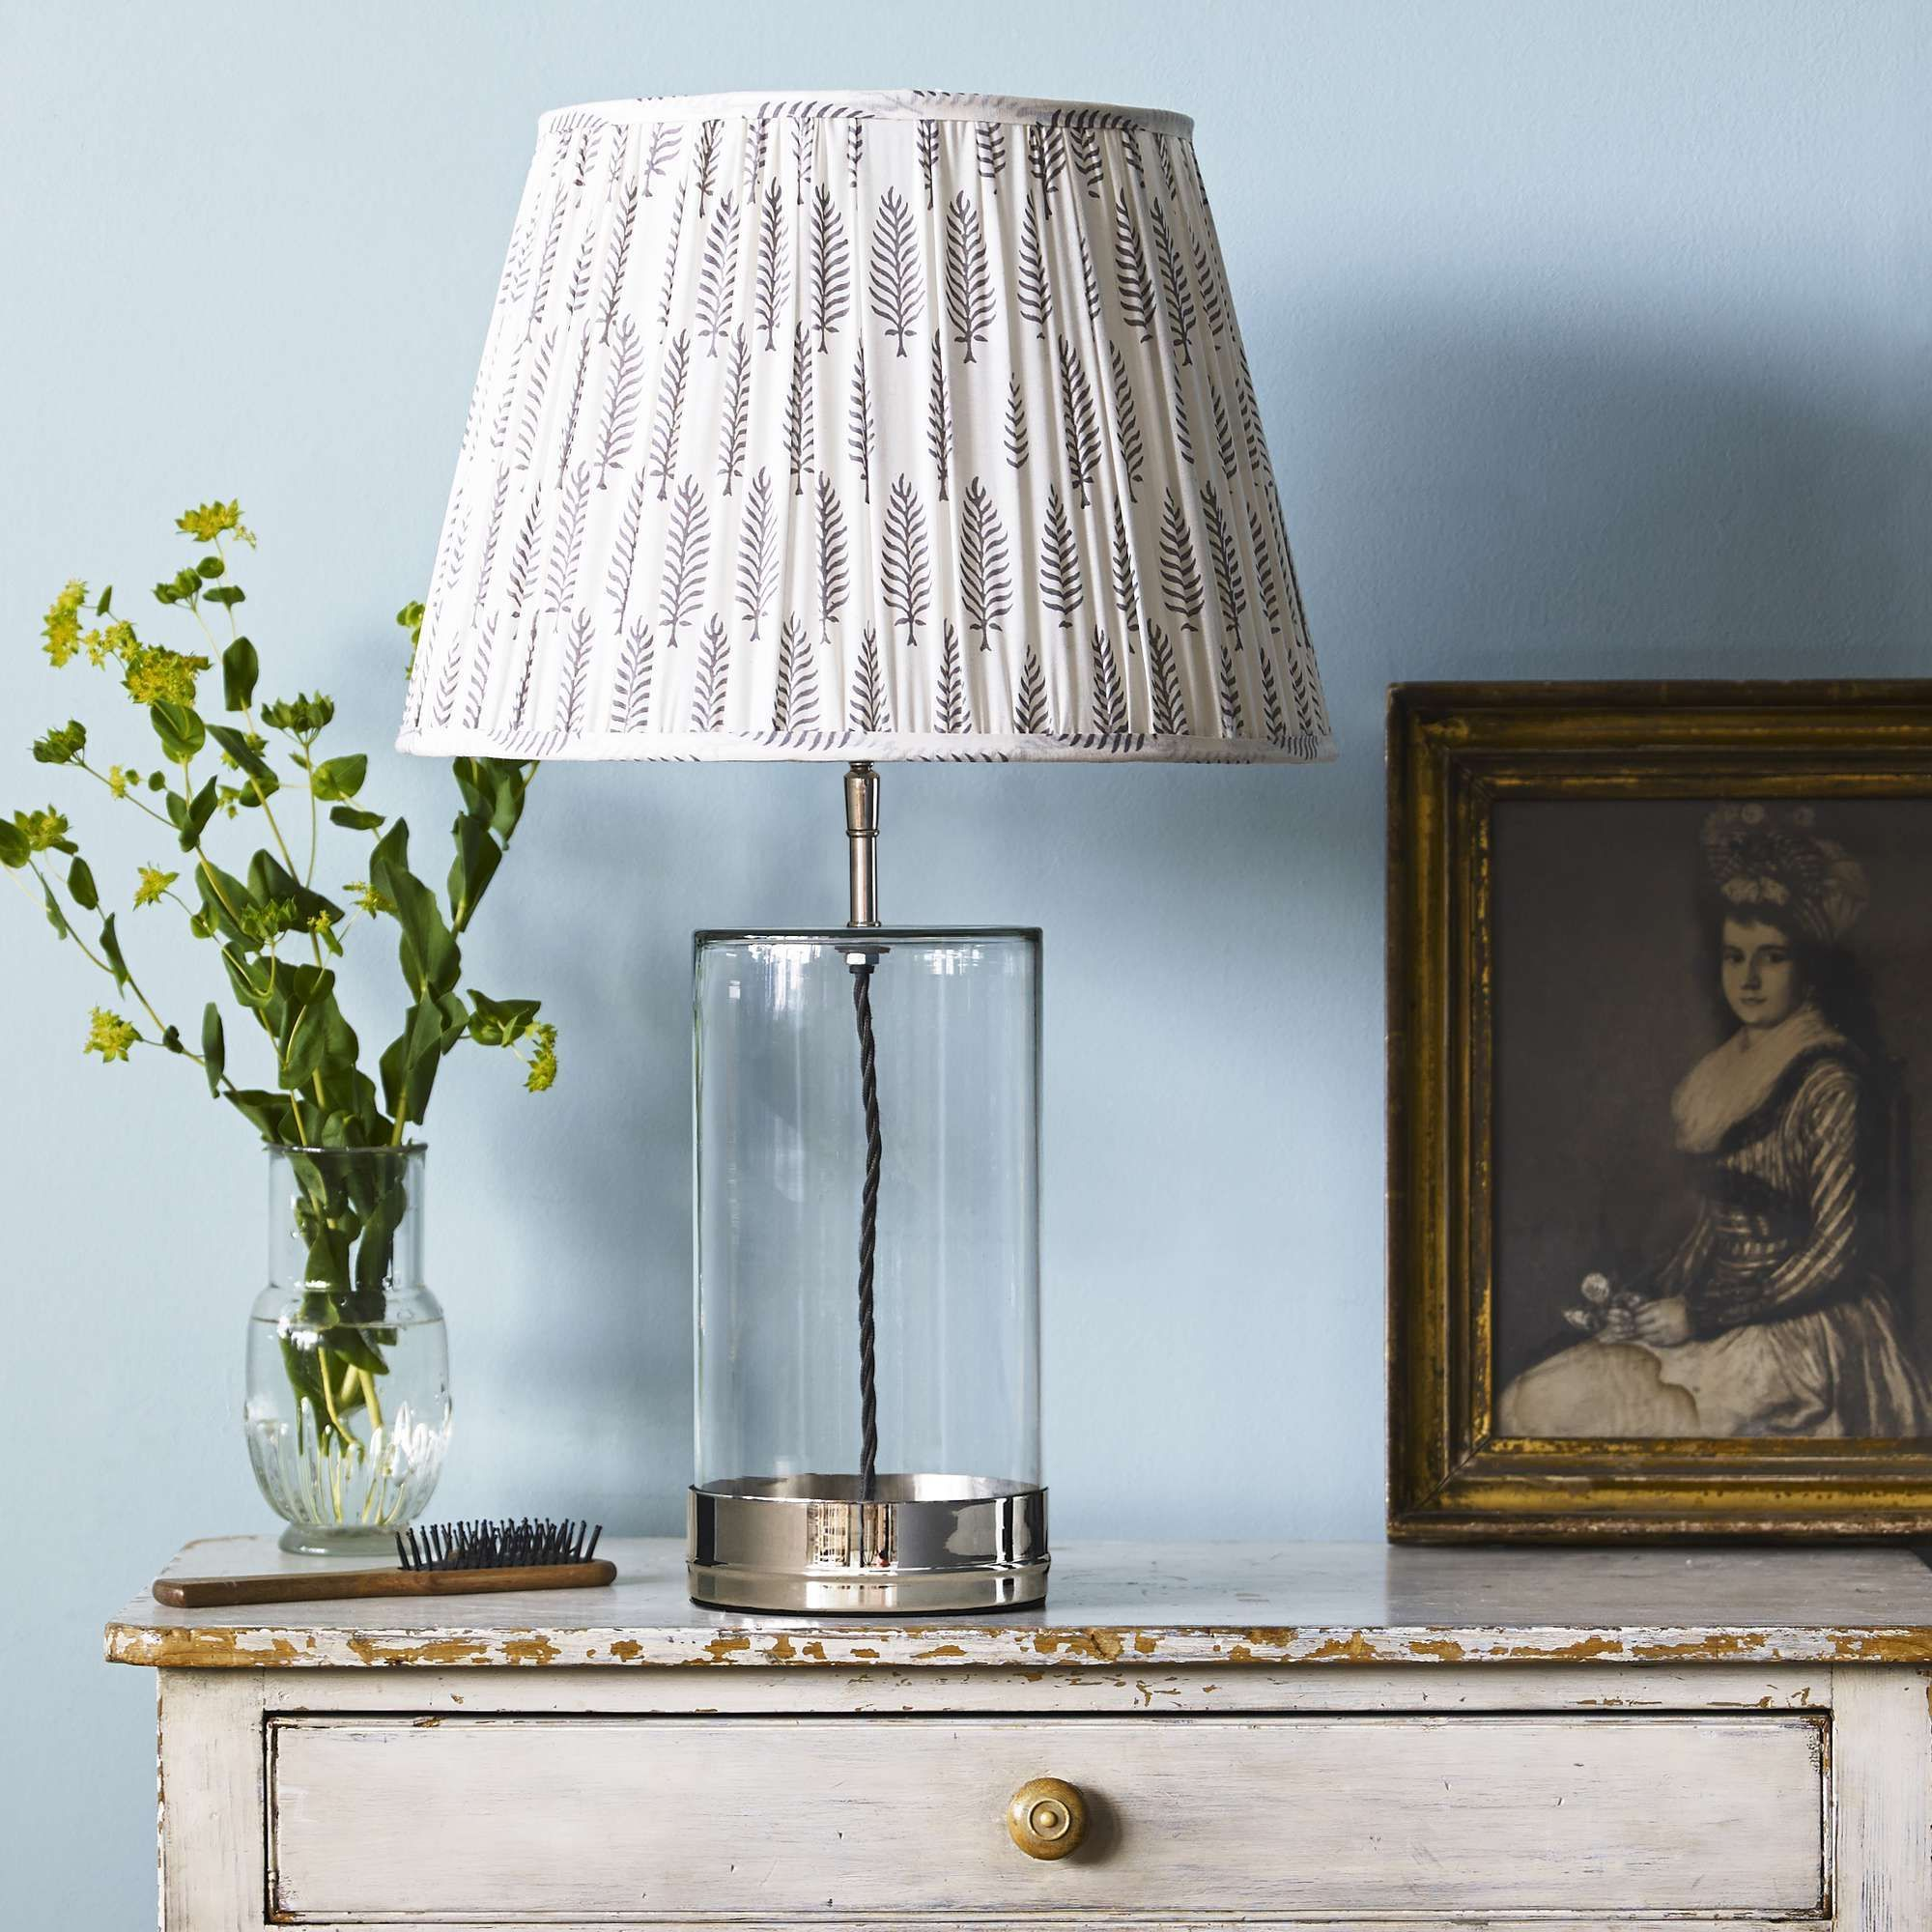 Regular Wisteria Table Lamp In Nickel And Clear Glass In 2020 Lampe Glaslampen Lampentisch